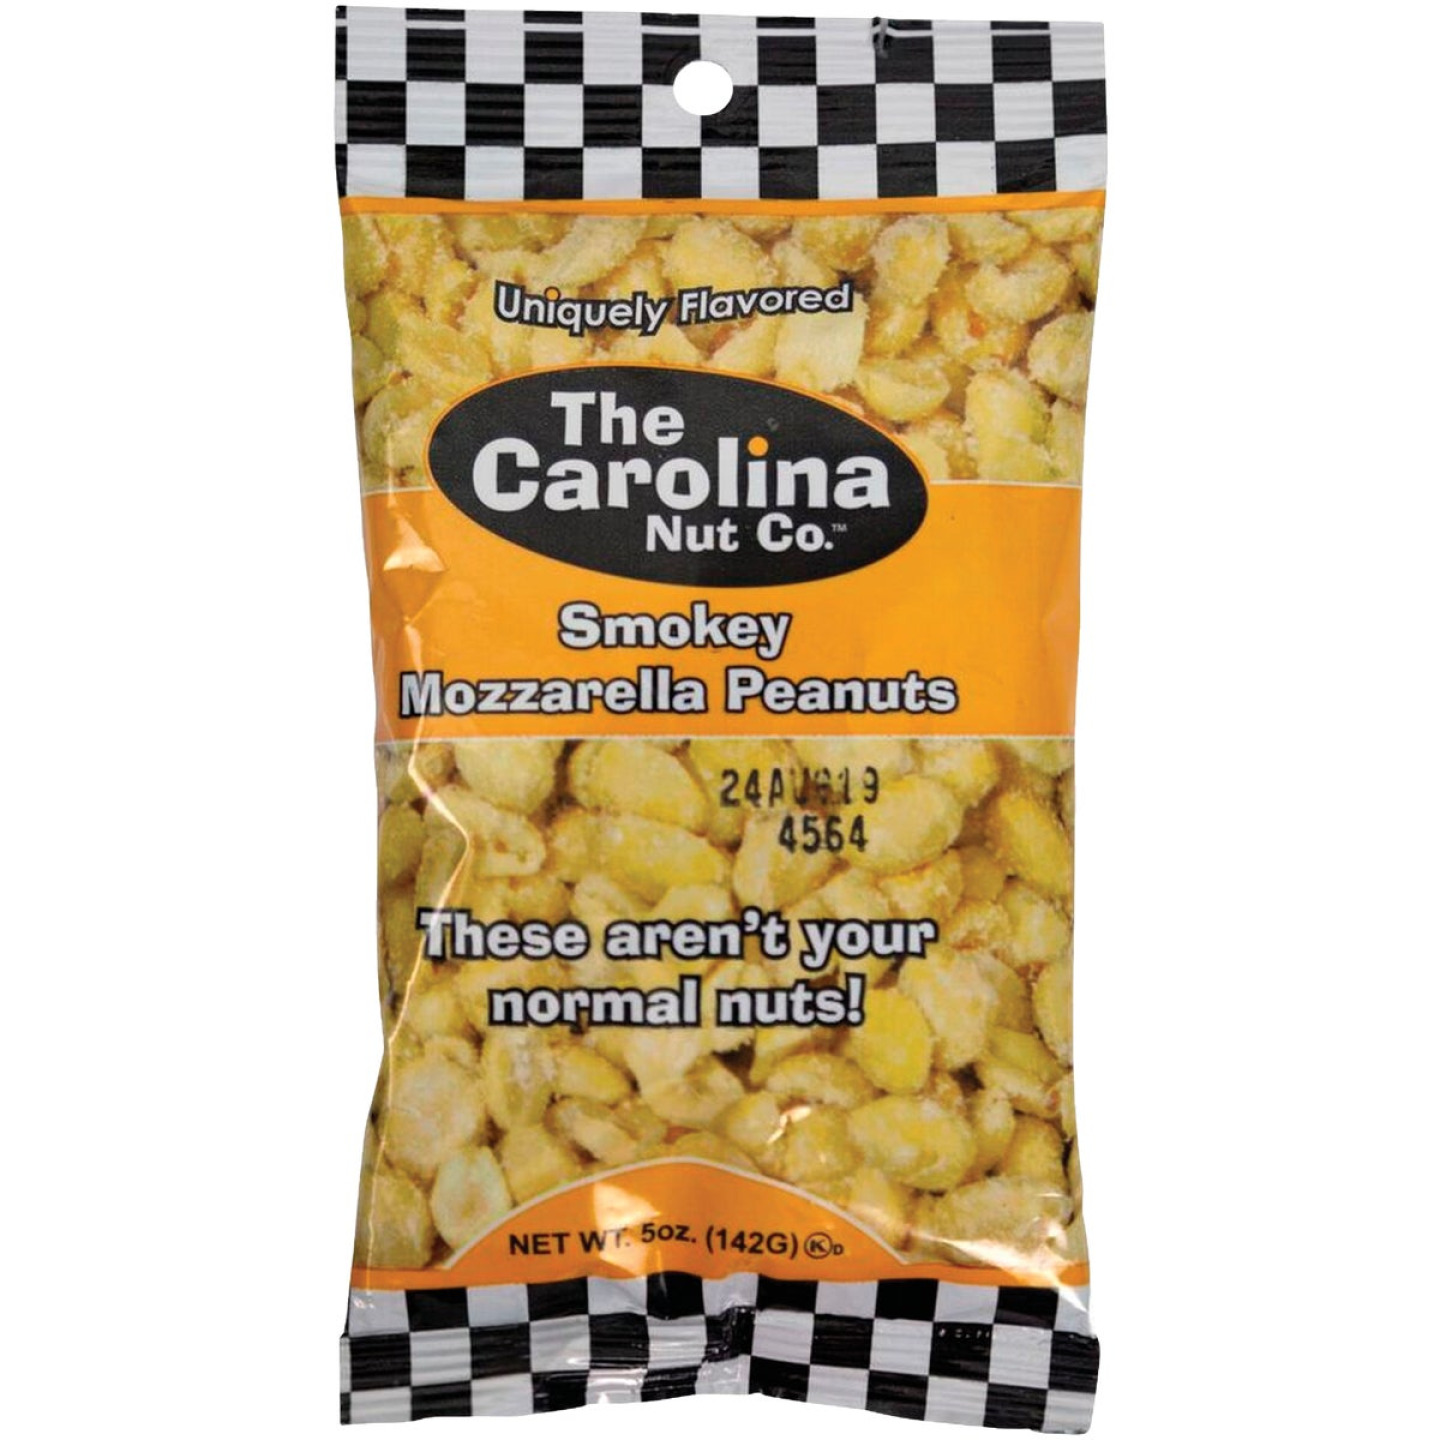 The Carolina Nut Company 5 Oz. Smokey Mozzarella Peanuts Image 1